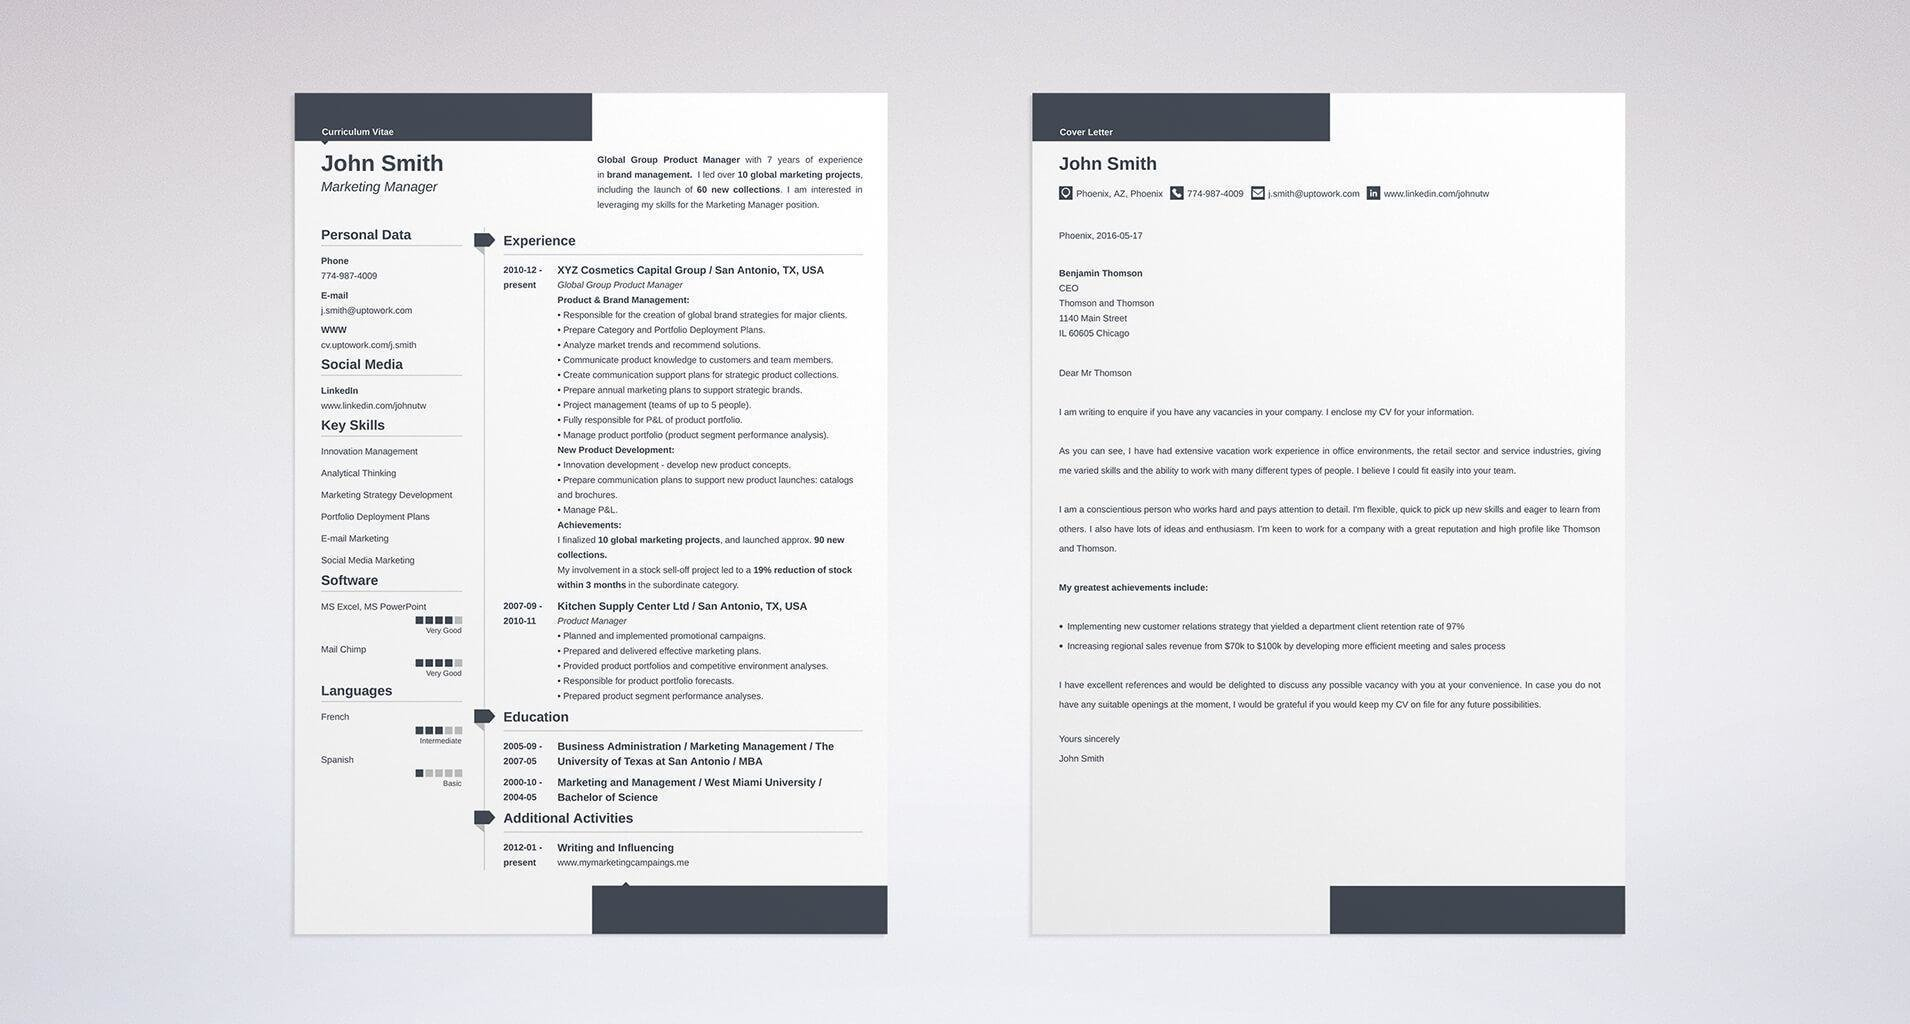 Product Manager Resume Examples (Guide & Template)